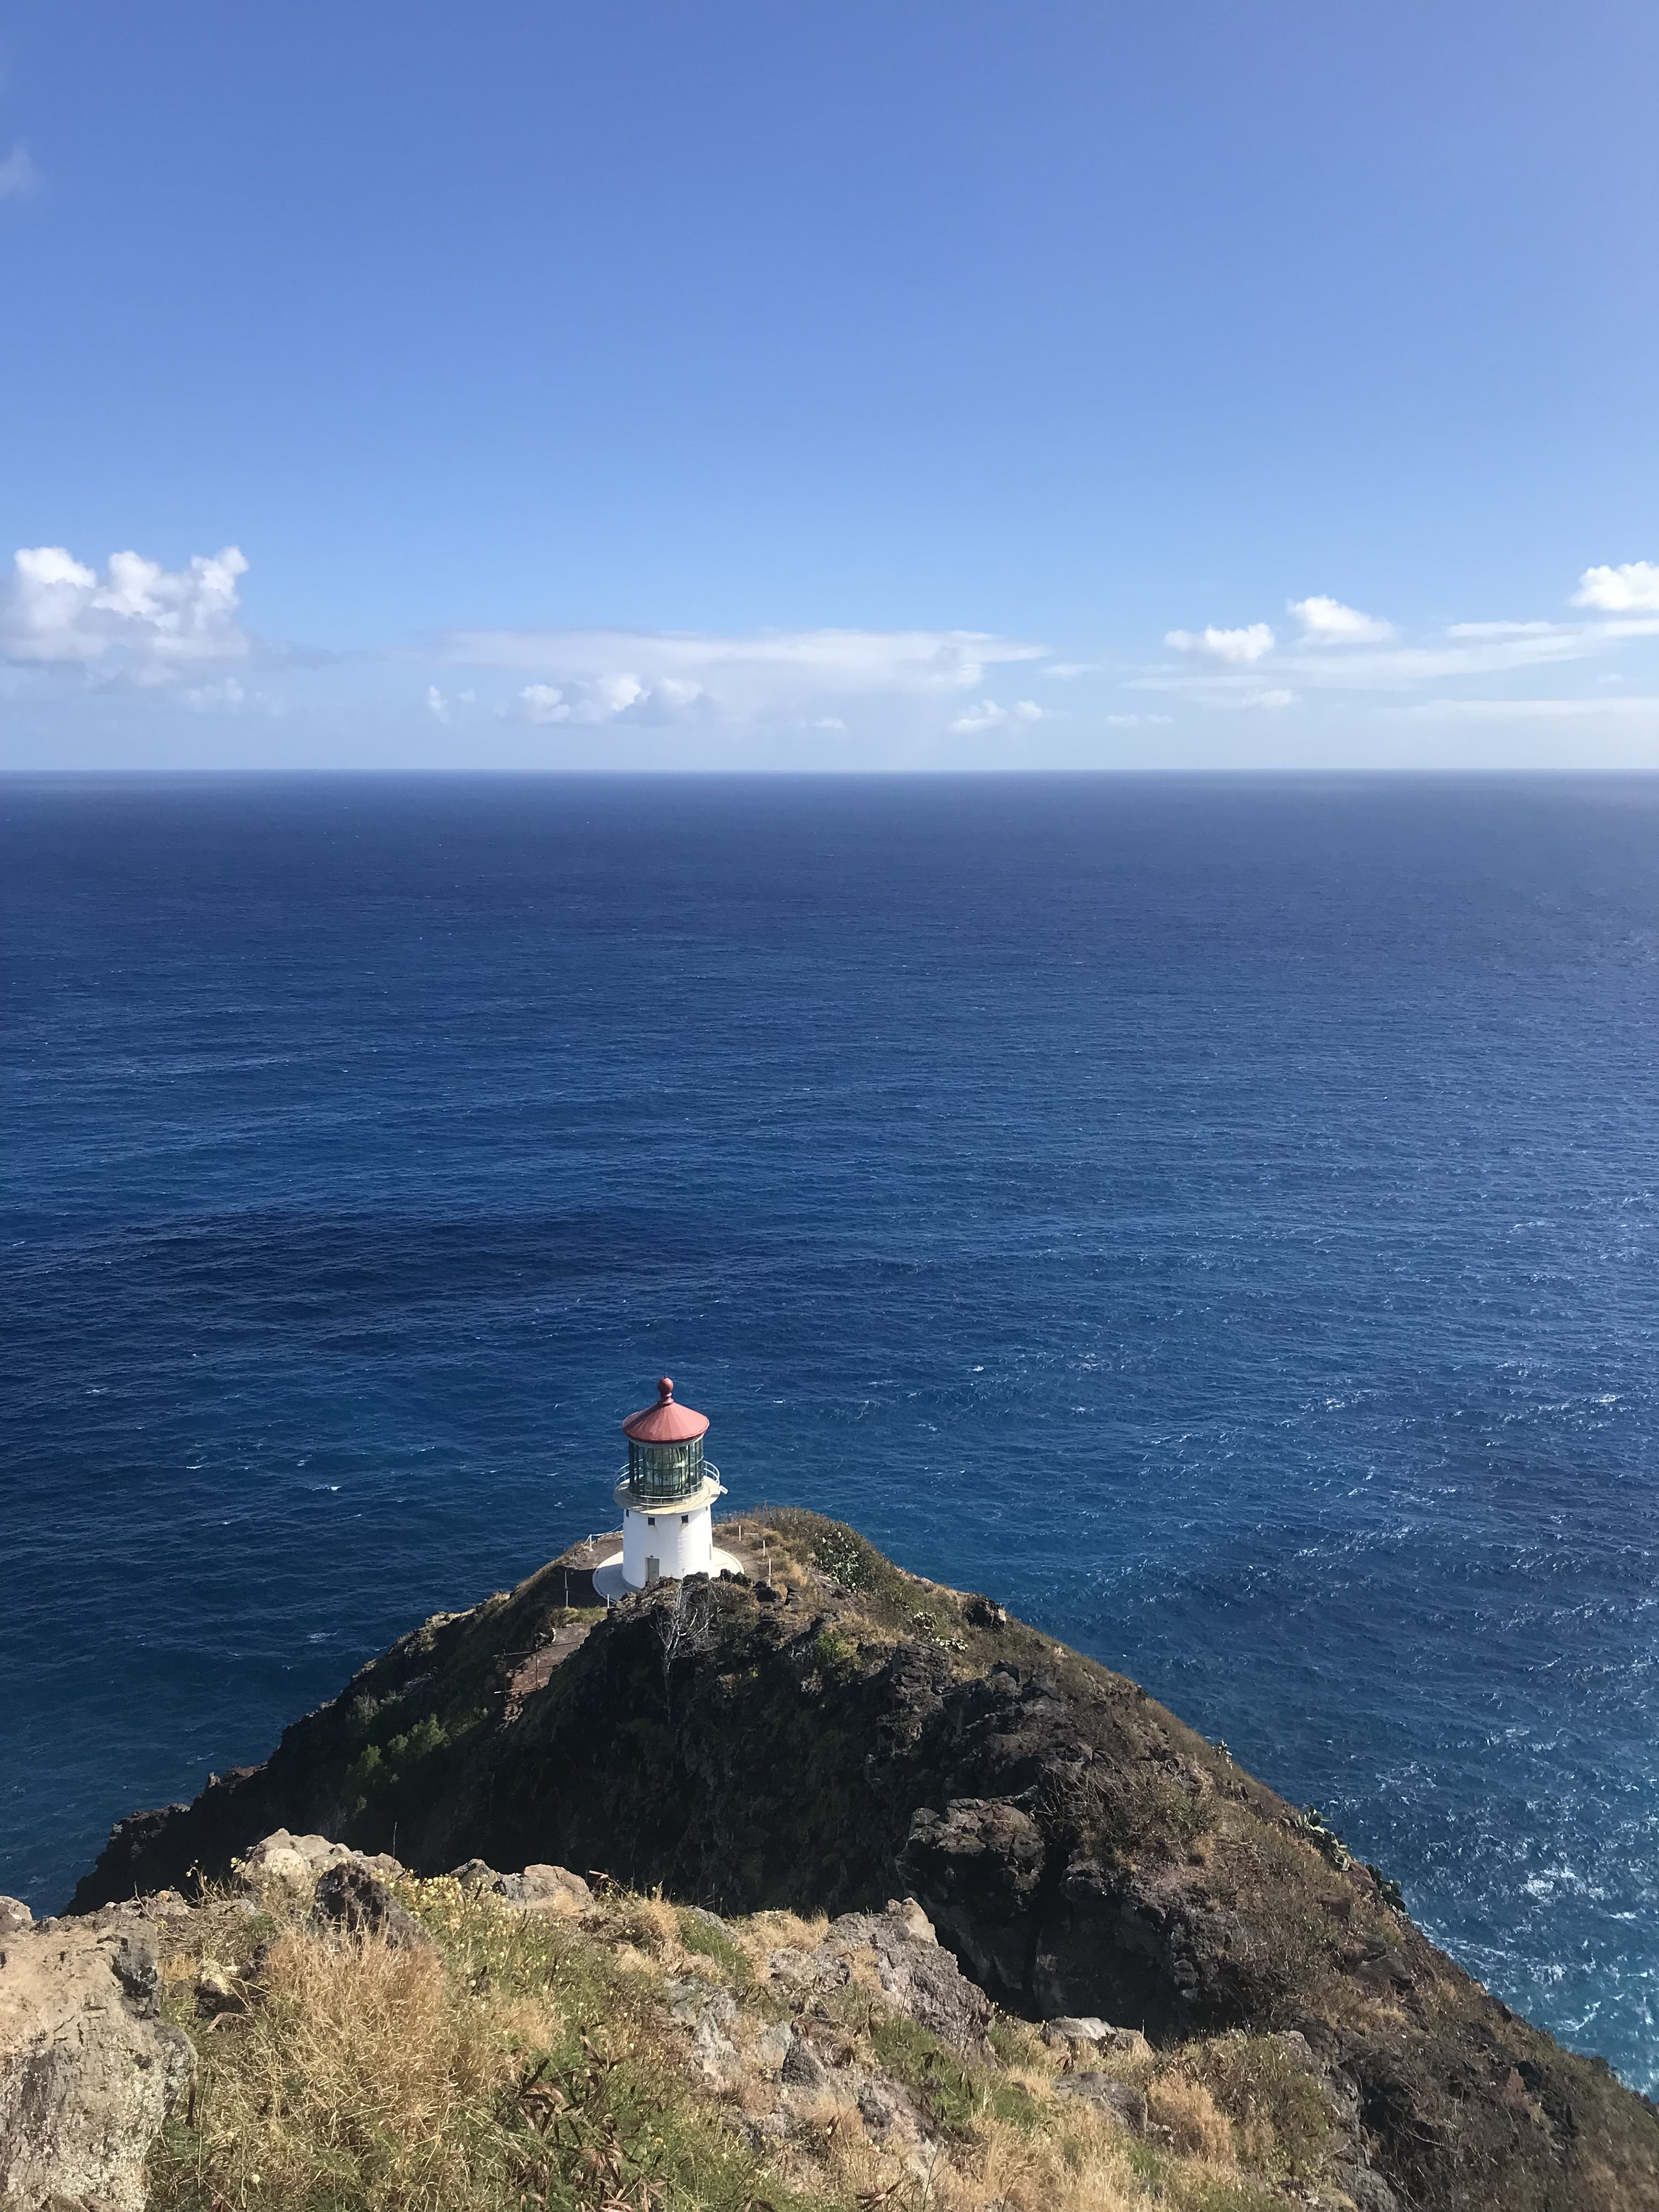 HIKING IN HAWAII: MAKAPUU LIGHTHOUSE TRAIL | An easy hike on Oahu that is fun for hikers of all ages along a paved path that offers beautiful views at the top! - Makapuu Lighthouse - Makapuu Lighthouse Trail - Makapuu Lighthouse Hike - Makapuu Point Lighthouse - Makapuu Lighthouse Trail Hours - Easy Hikes Oahu - Oahu Hikes - Oahu Hikes For Kids - Oahu Hikes For Families - Easy Oahu Hikes - Short Oahu Hikes - #oahu #travel #hawaii